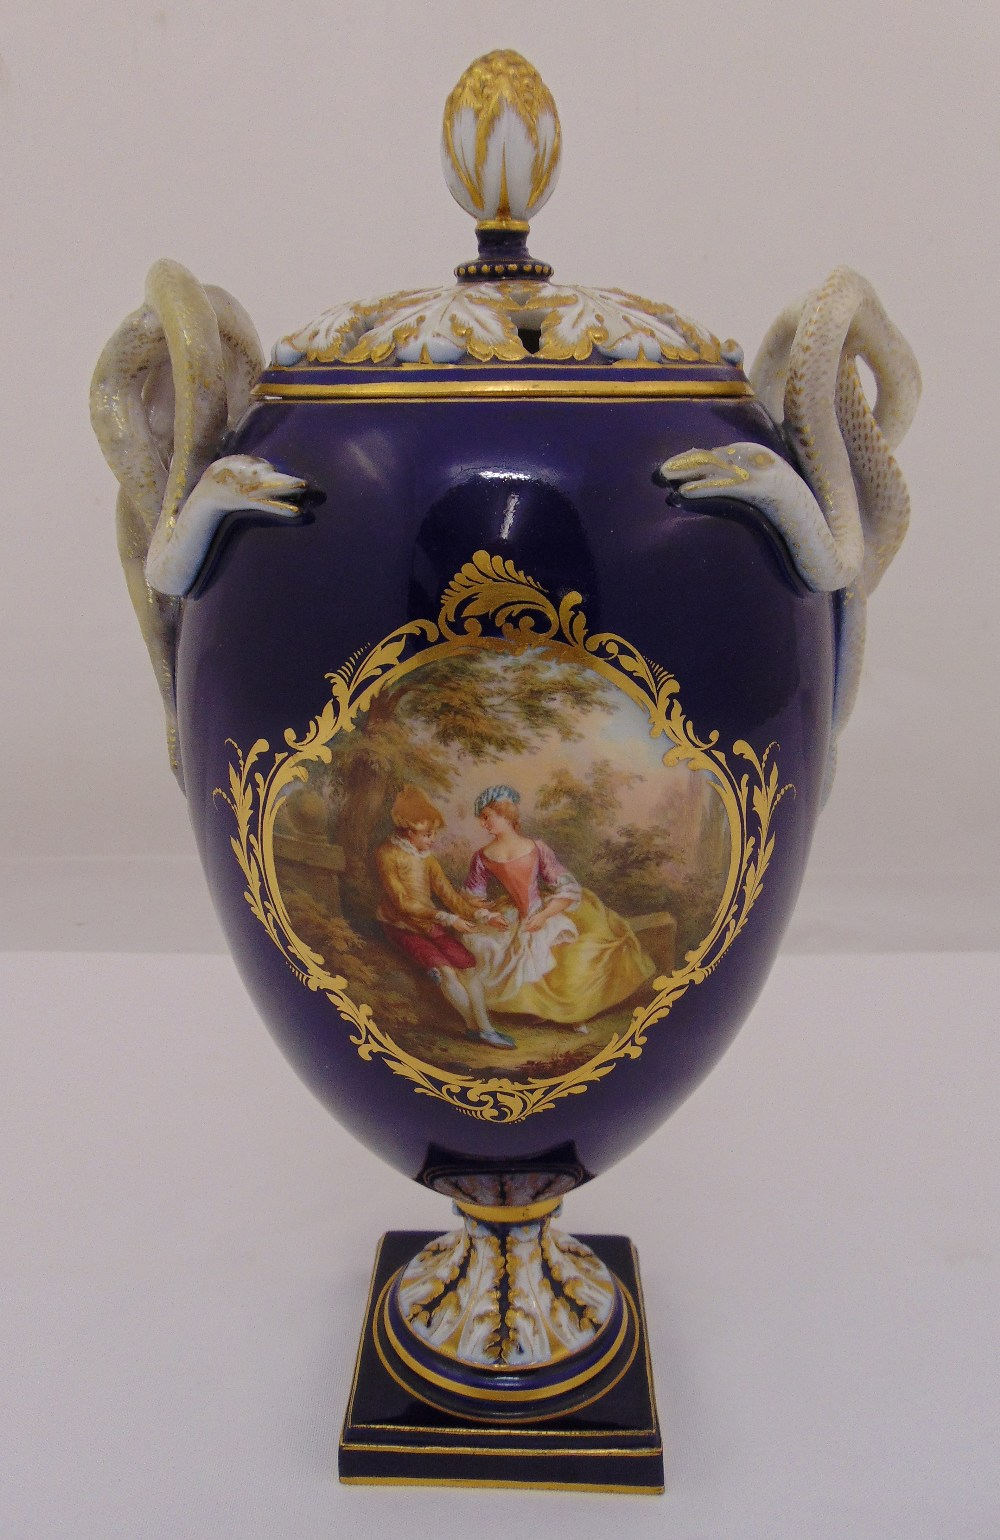 Lot 115 - Meissen potpourri urn with pull off cover, painted with idyllic rural scenes after Boucher with